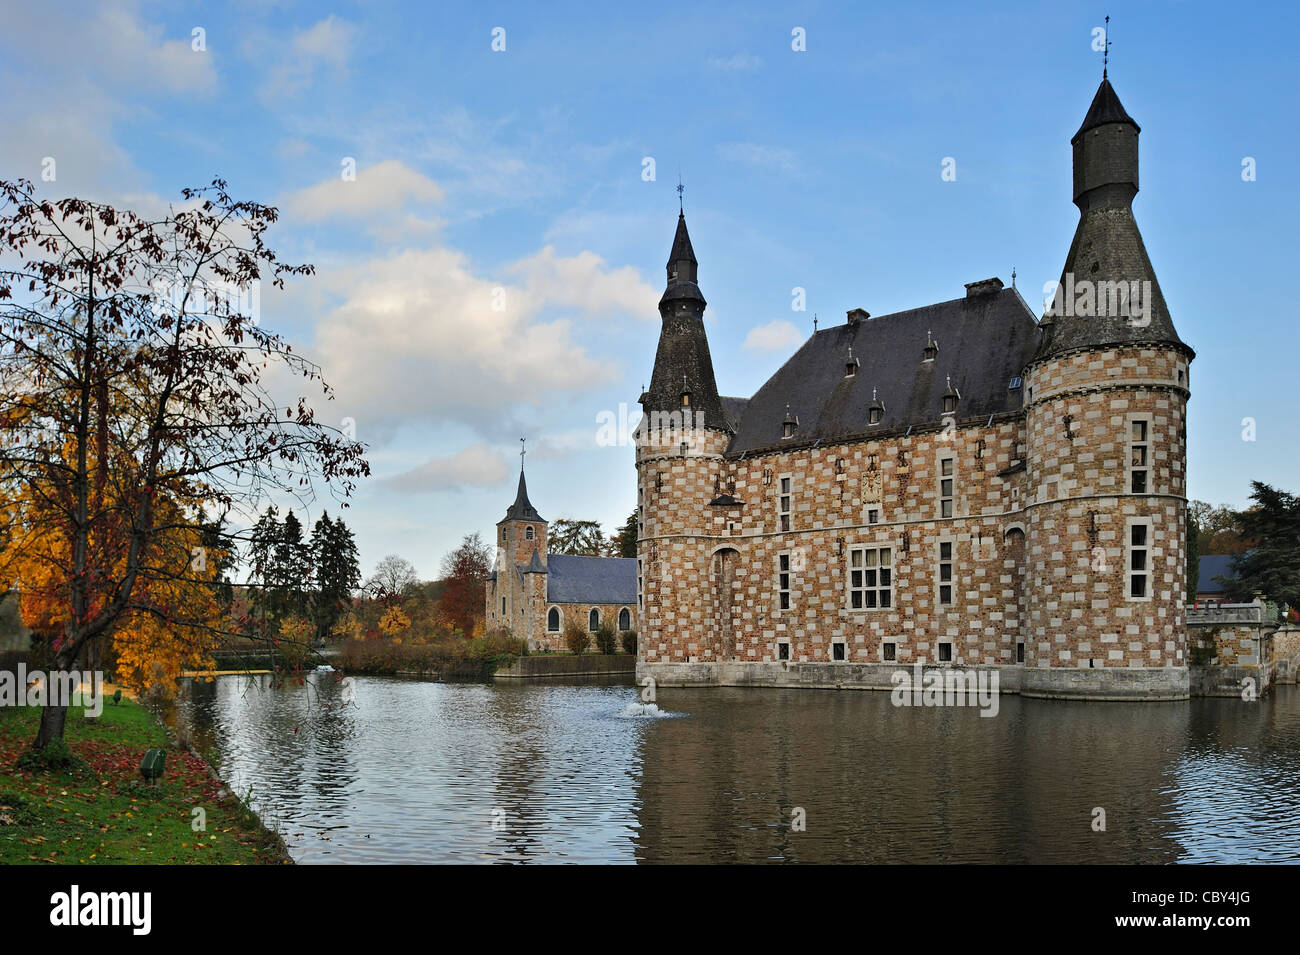 Castle Jehay with checkerboard façade in autumn, Belgium - Stock Image